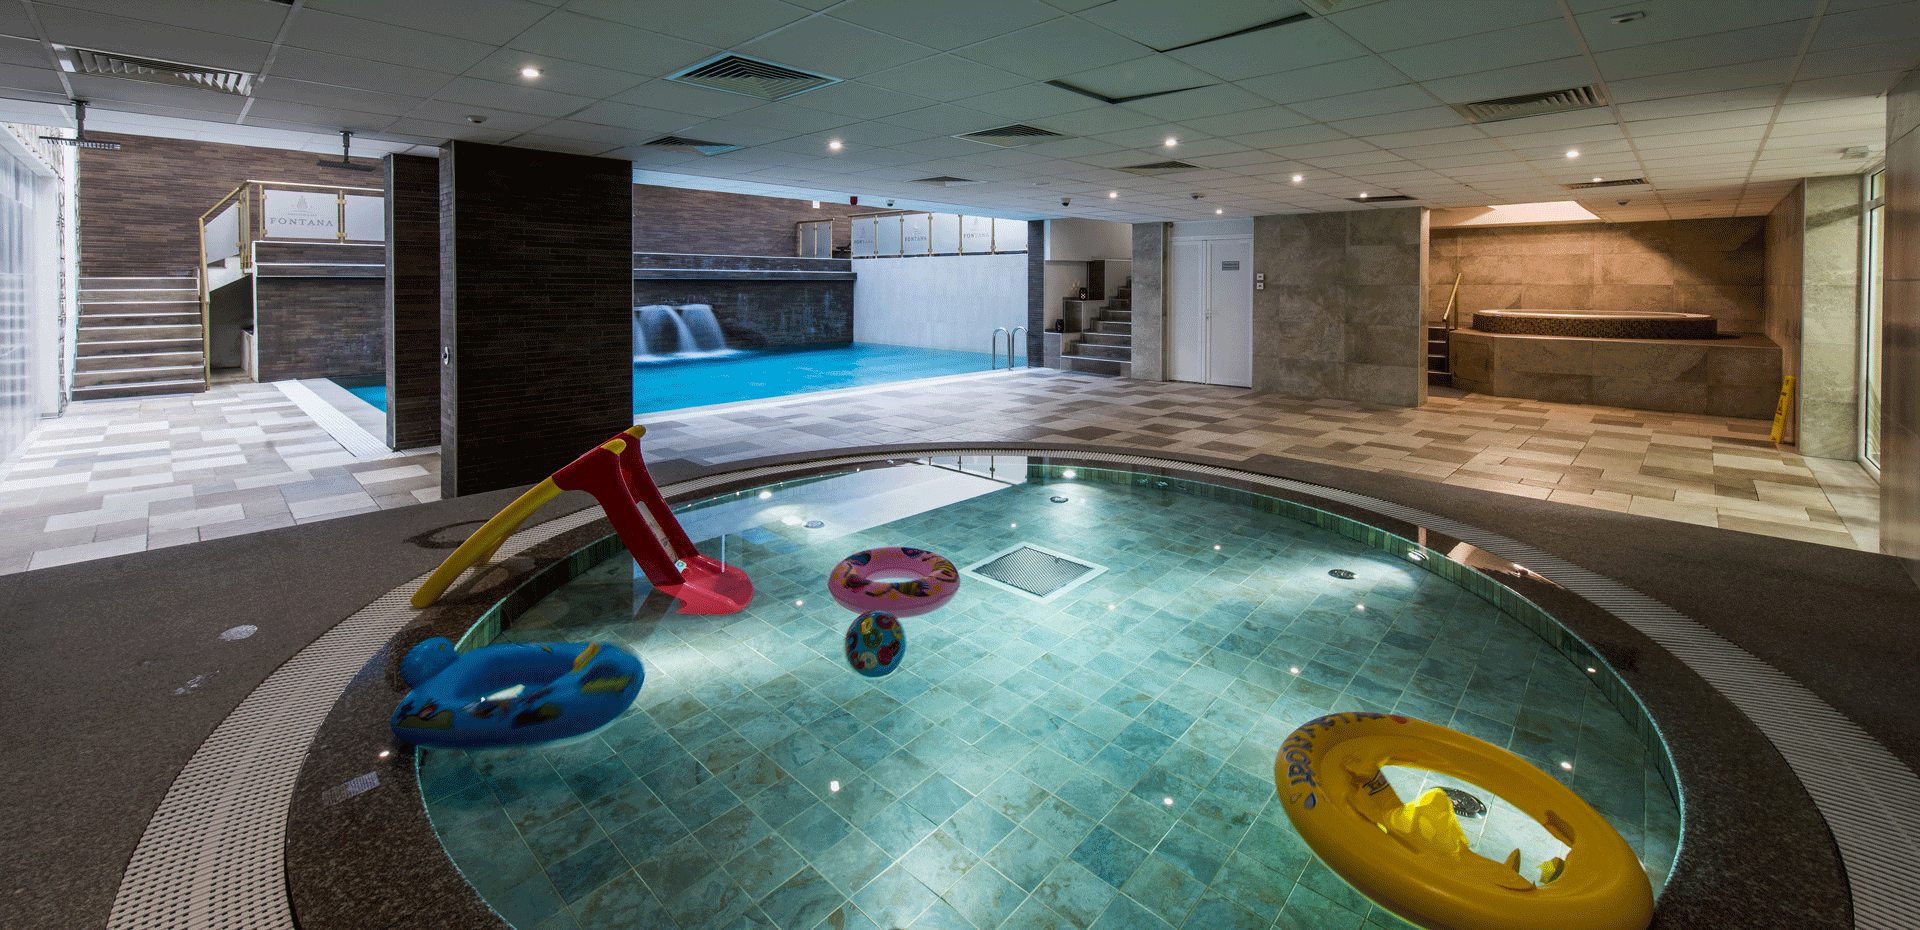 Wellness & Spa center is working again from Friday 29th May 2020